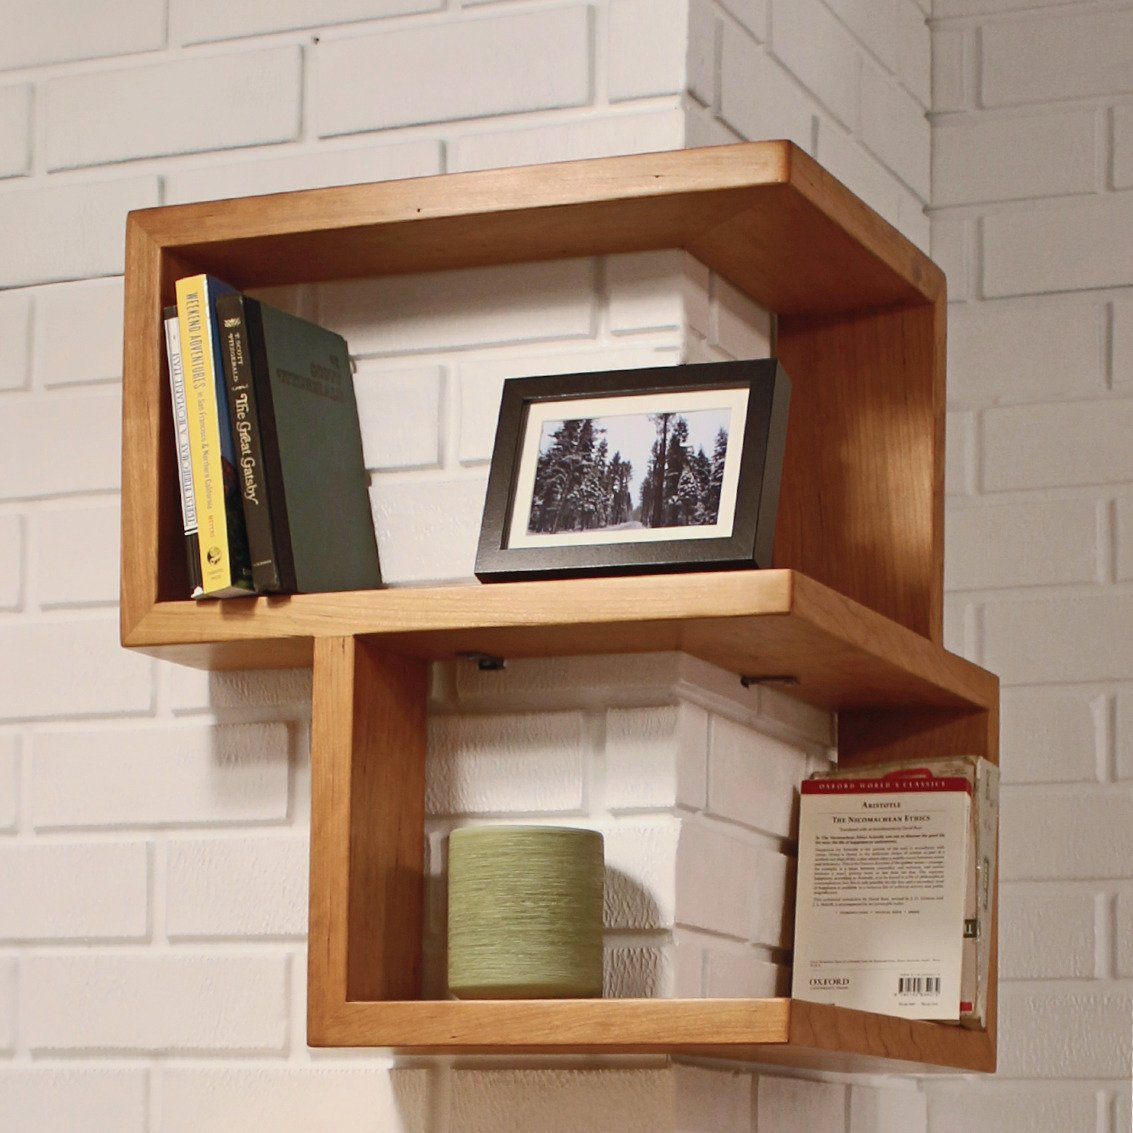 Franklin Shelf by Tronk Design